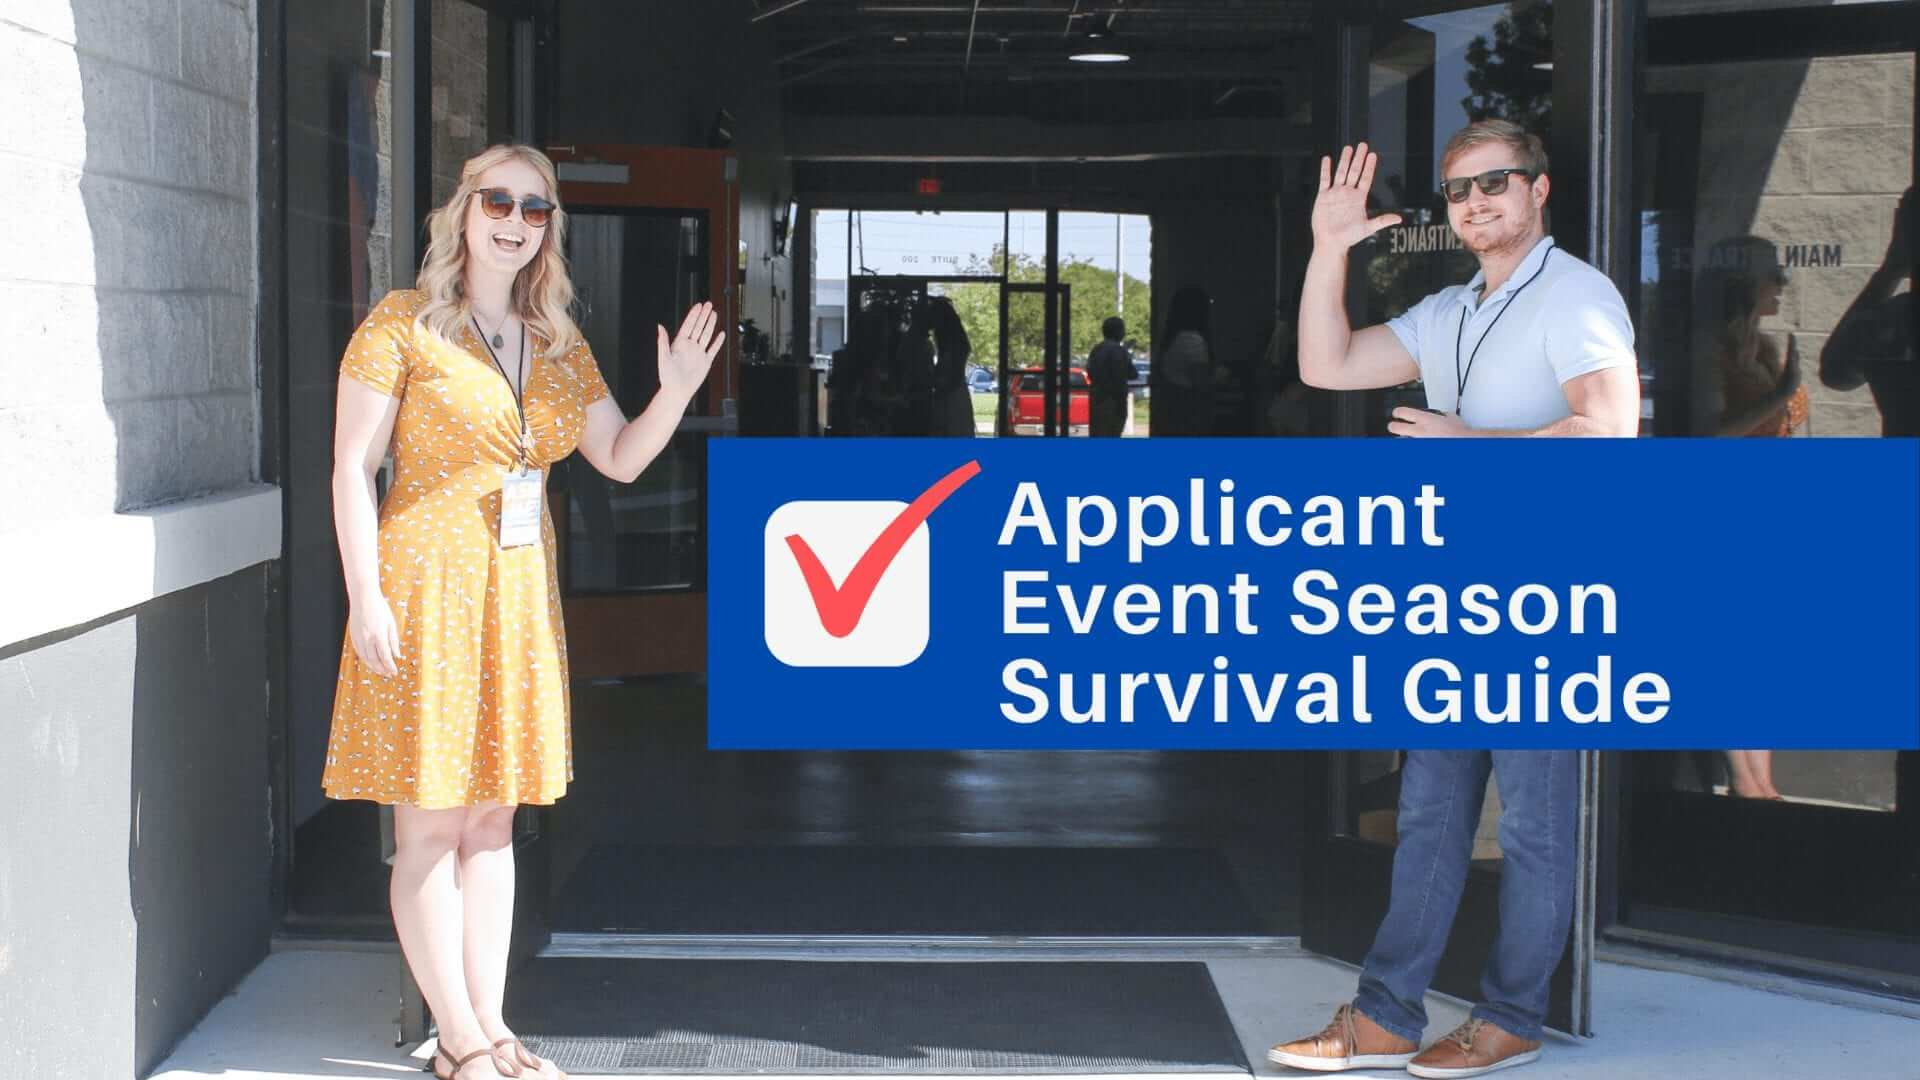 How to survive applicant event season